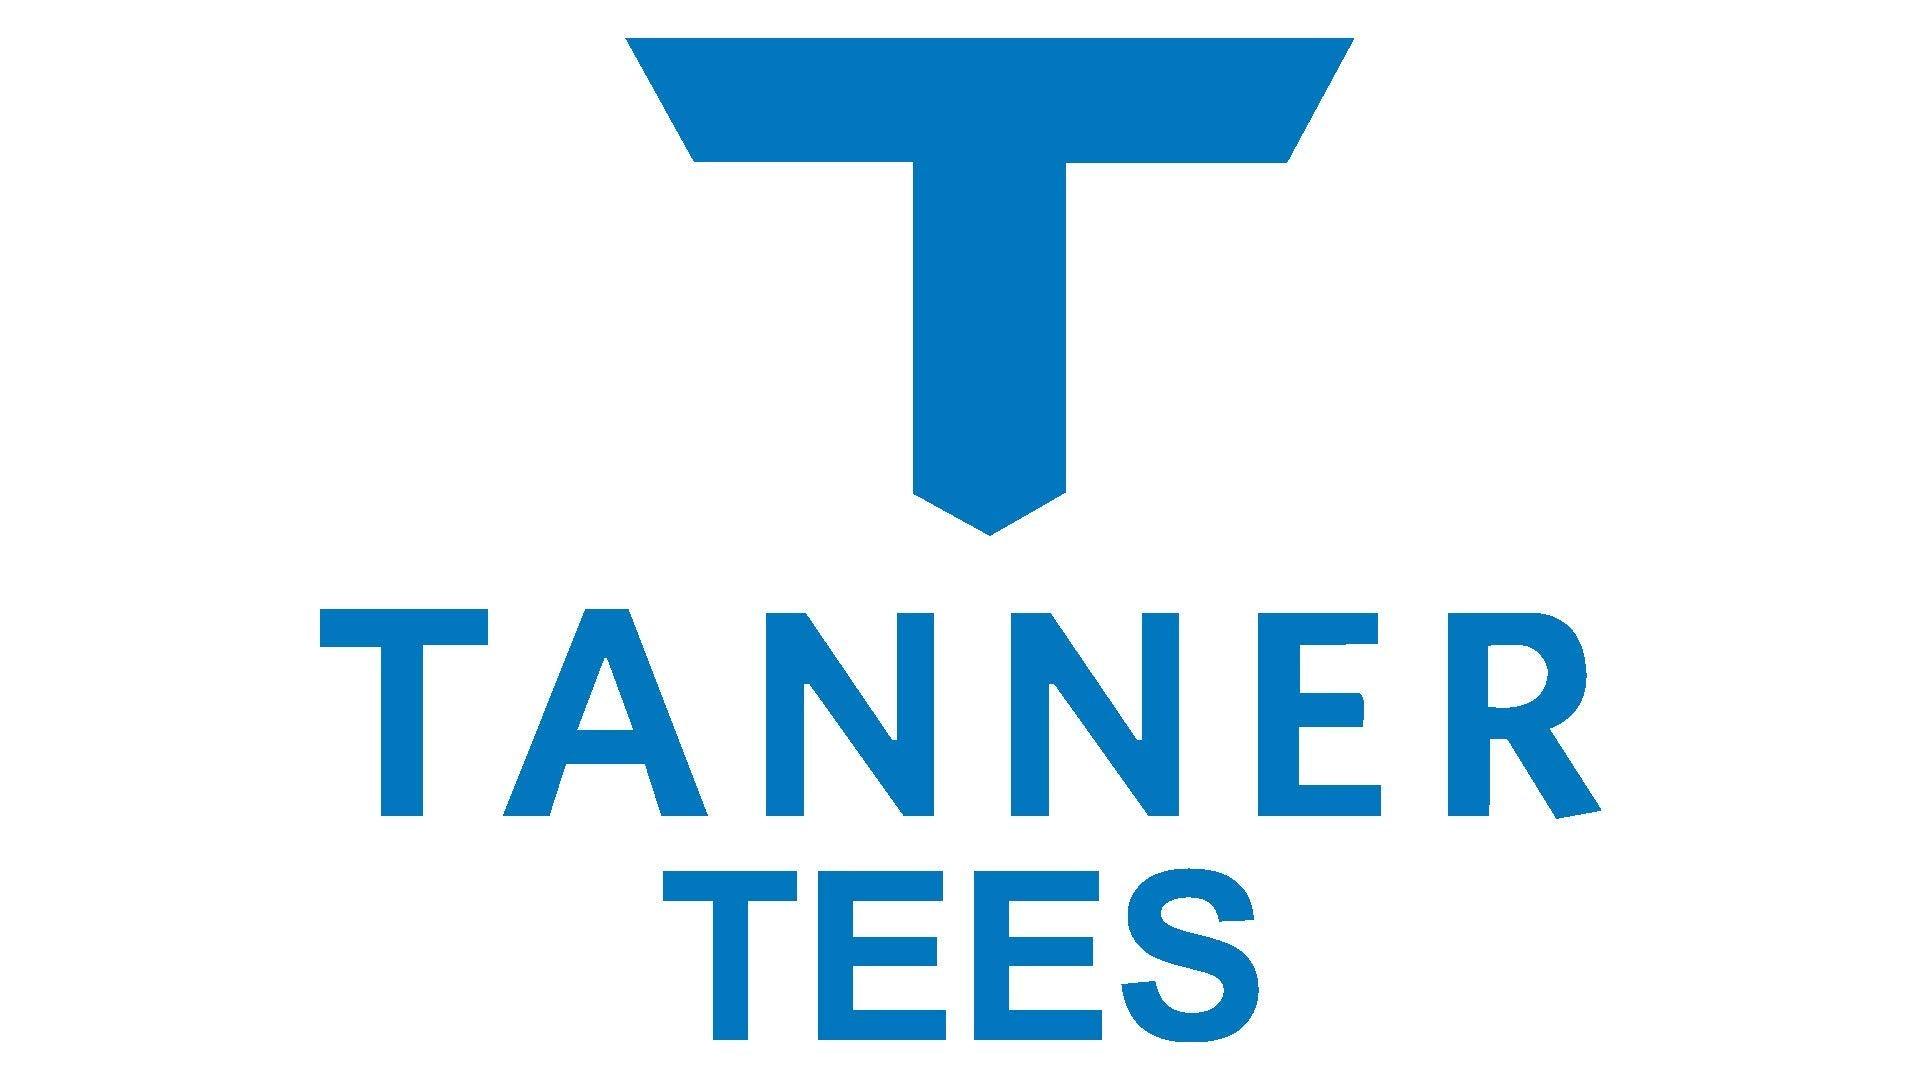 TANNER TEE the ORIGINAL | Premium Baseball/Softball Batting Tee w/ Tanner Original Base, Patented Hand-rolled FlexTop, and Easy Height Adjustments for Ages 9 & up - Ctfitnesswear